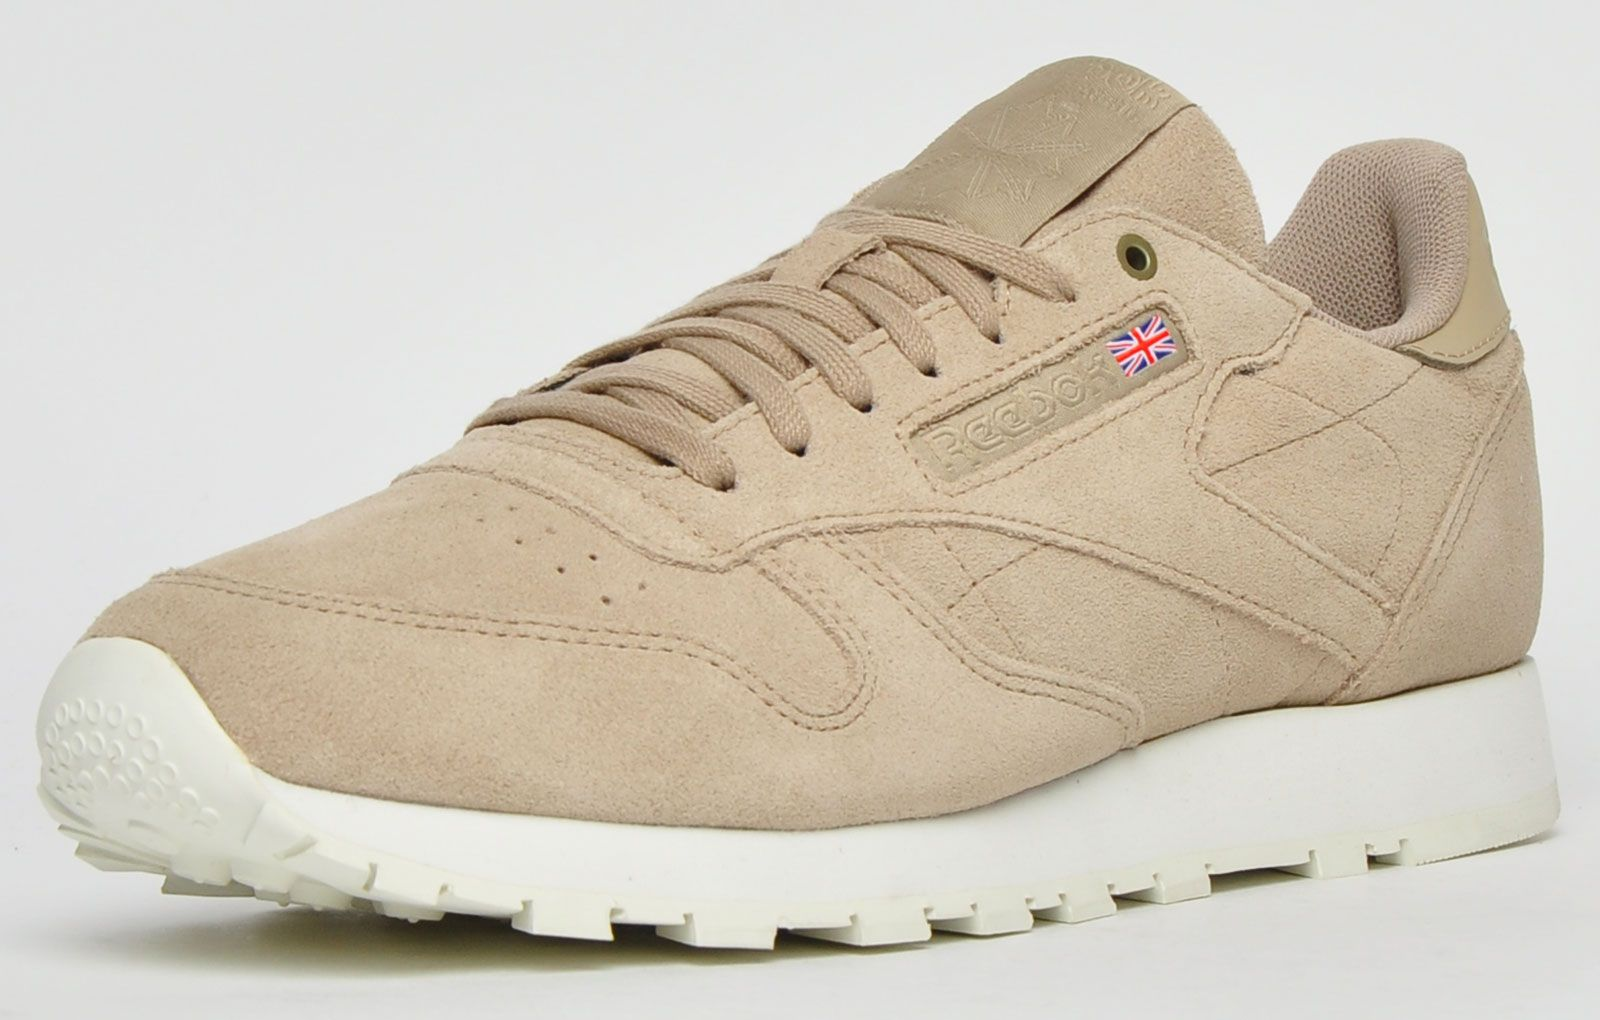 Reebok Montana Cans Classic Leather Limited Edition Mens